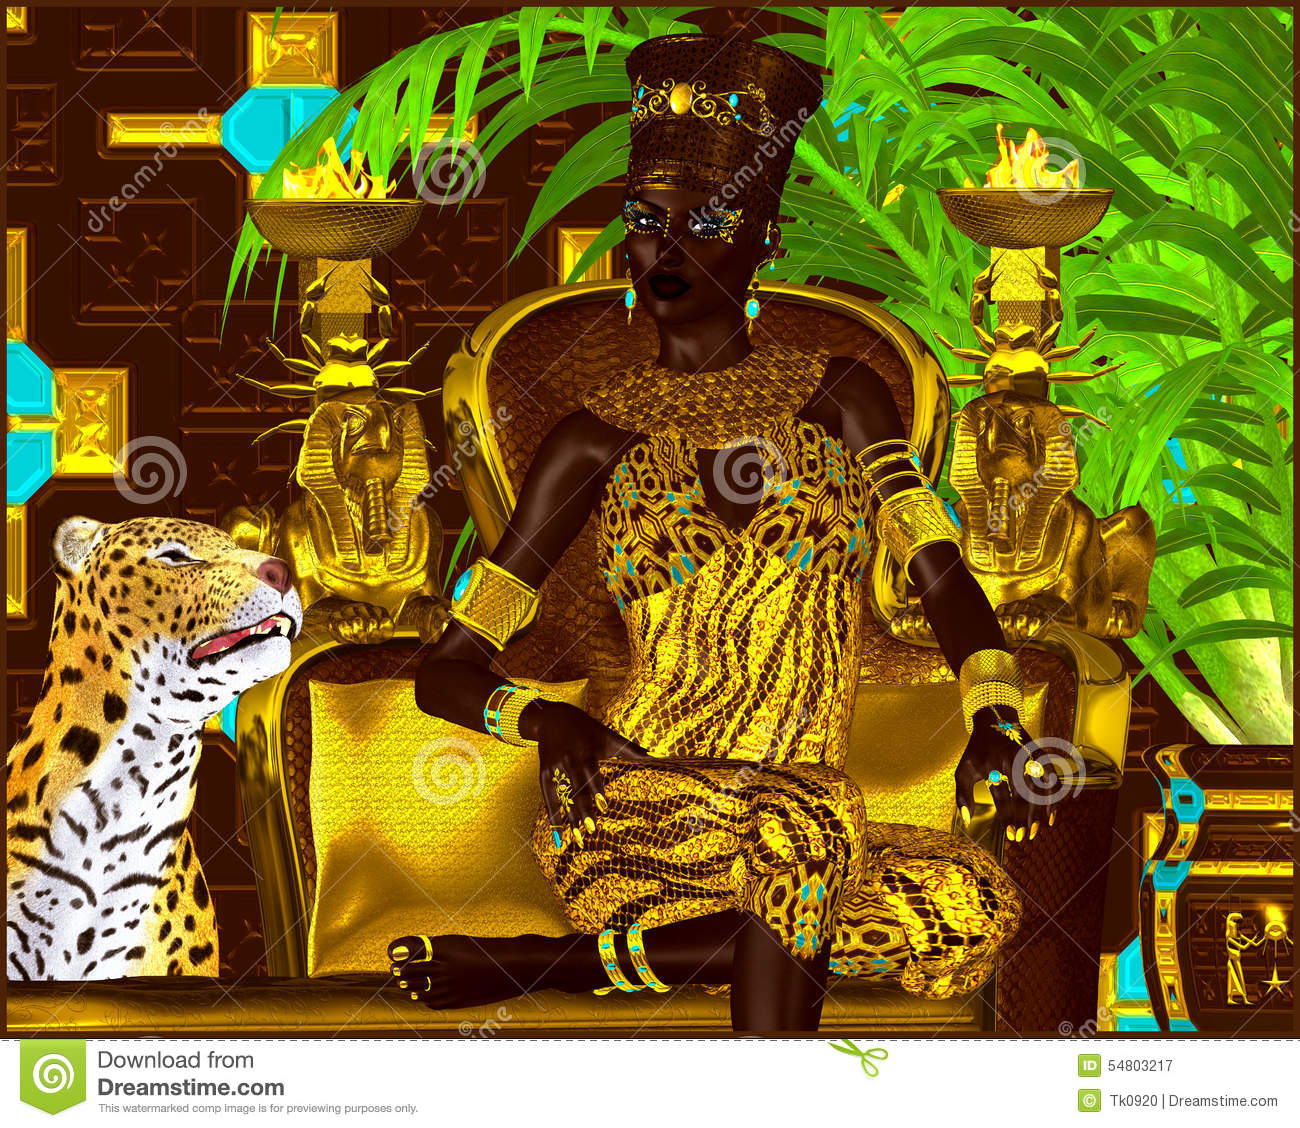 Nubian Princess. Seated on a gold chair with a leopard at her feet she exudes wealth, power and beauty. A fantasy digital art